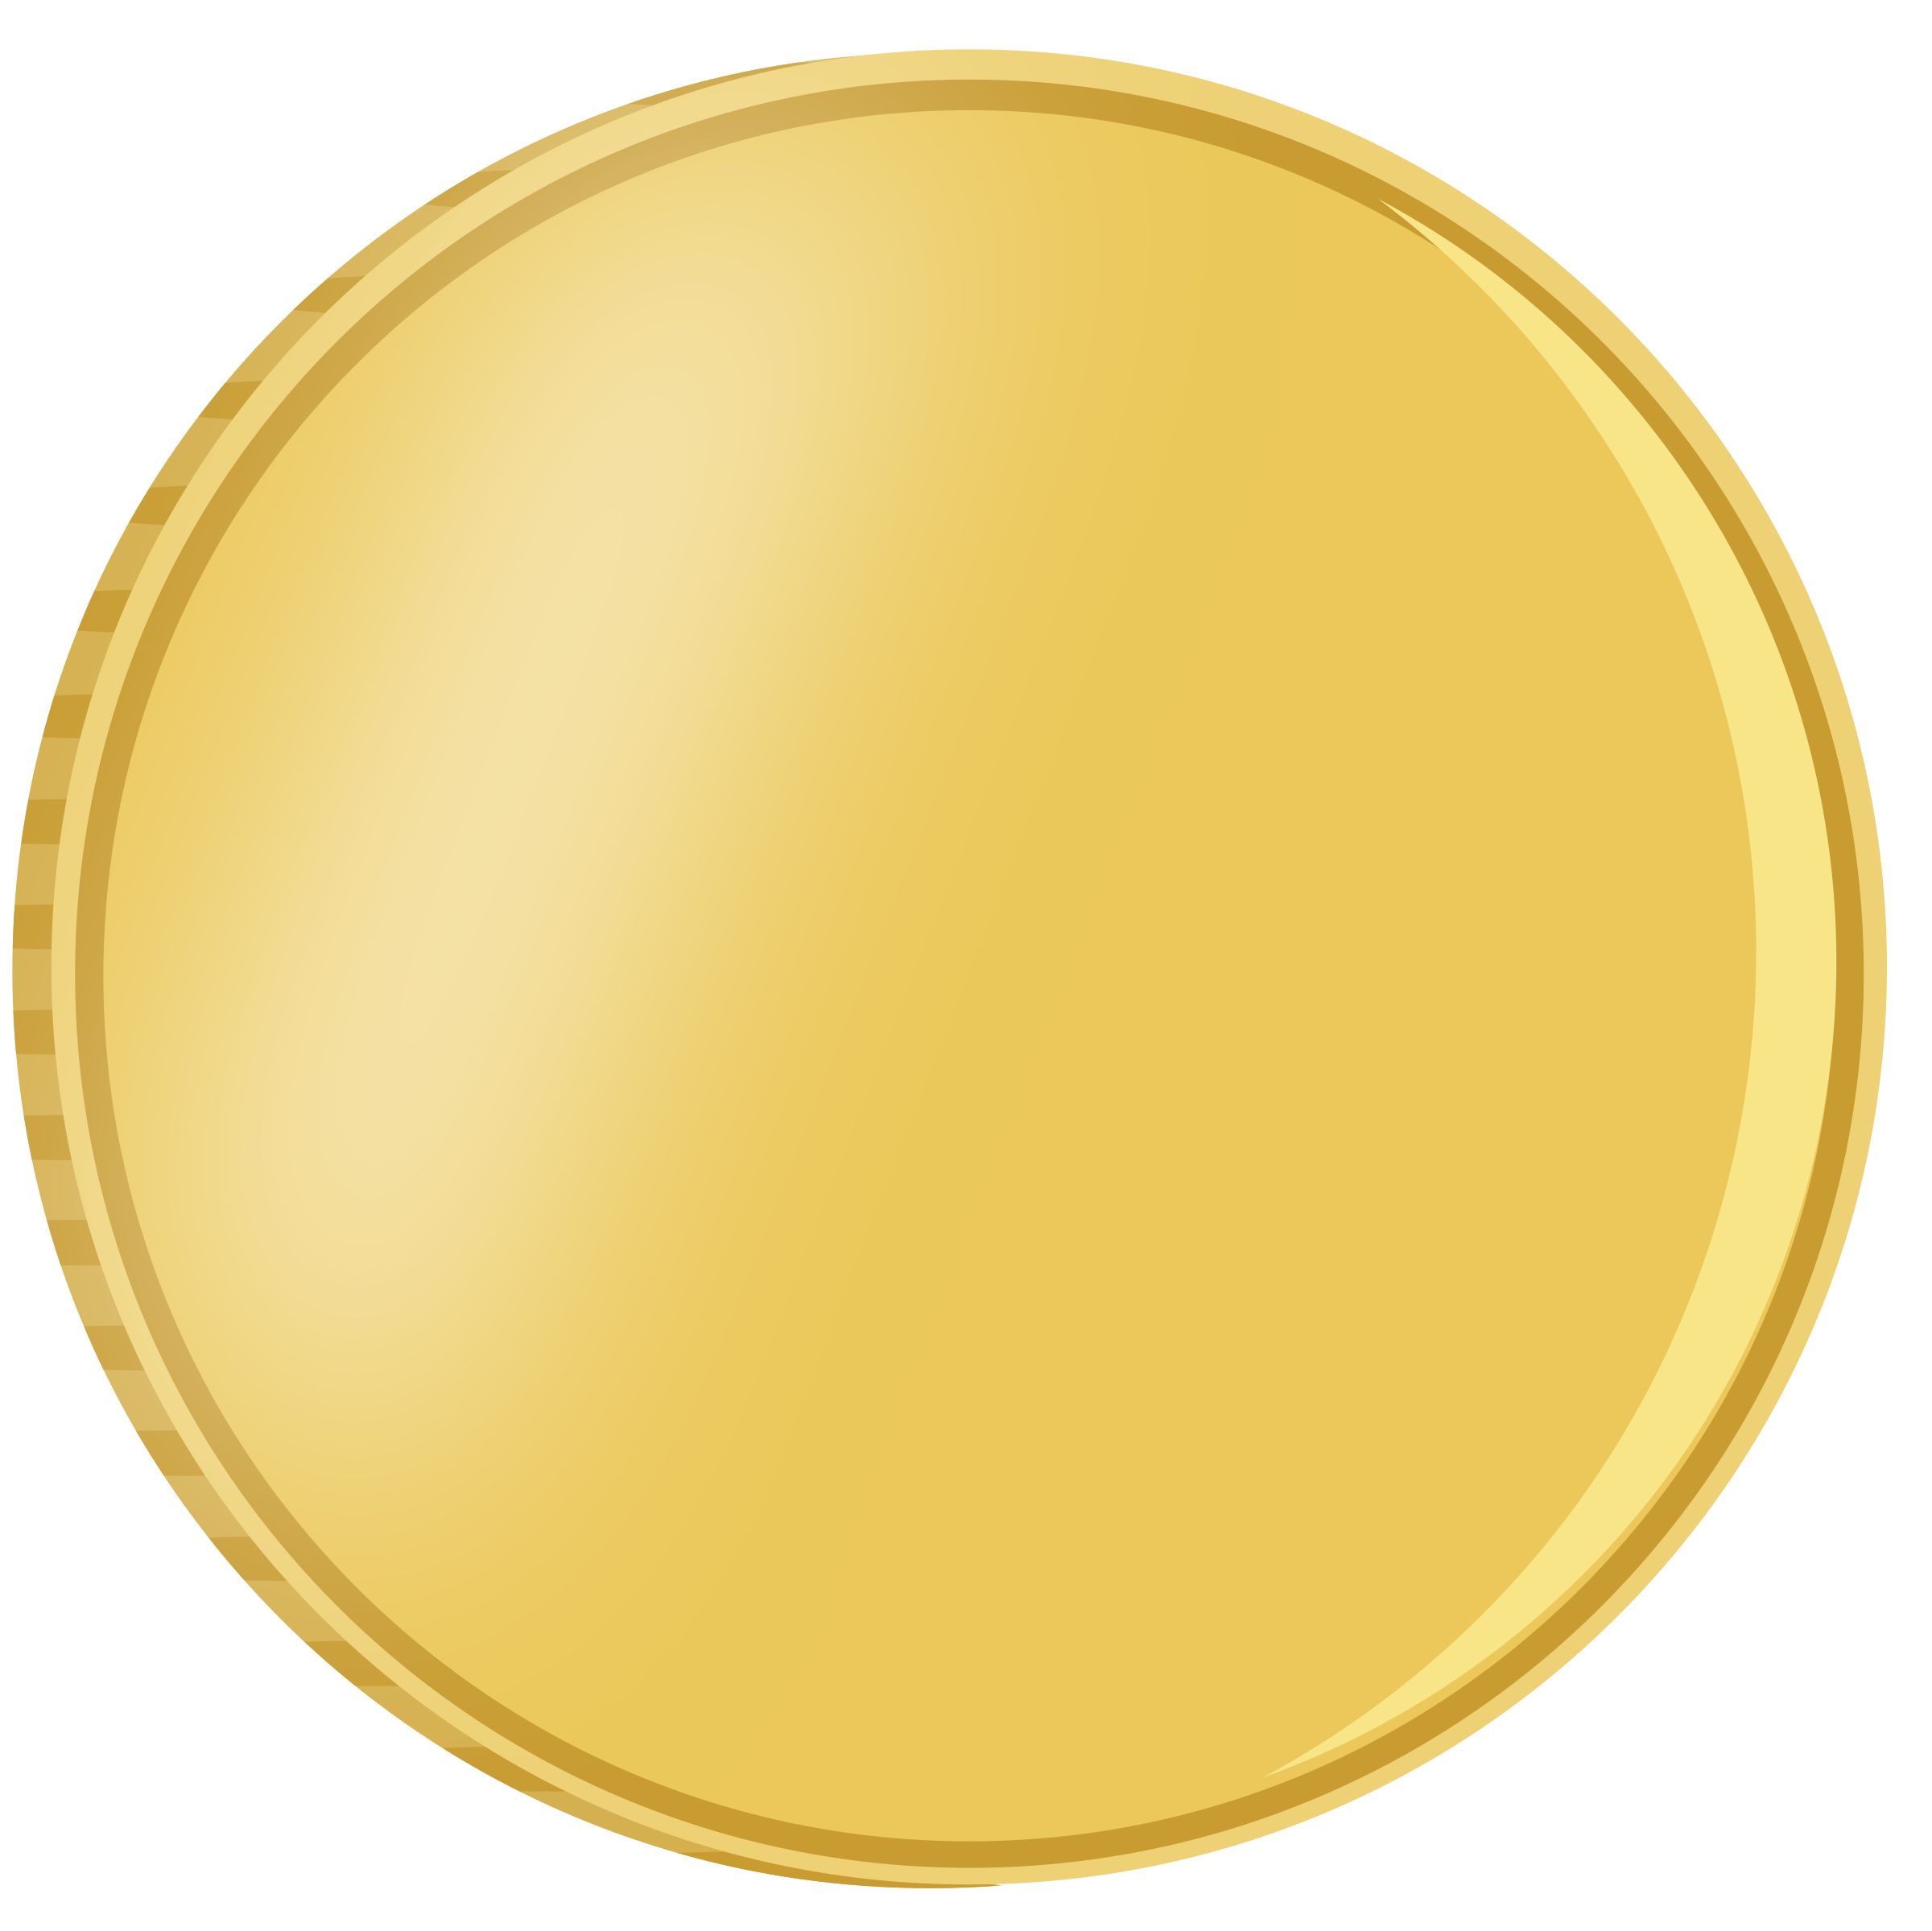 Coin clipart game gold. Spinning big image png